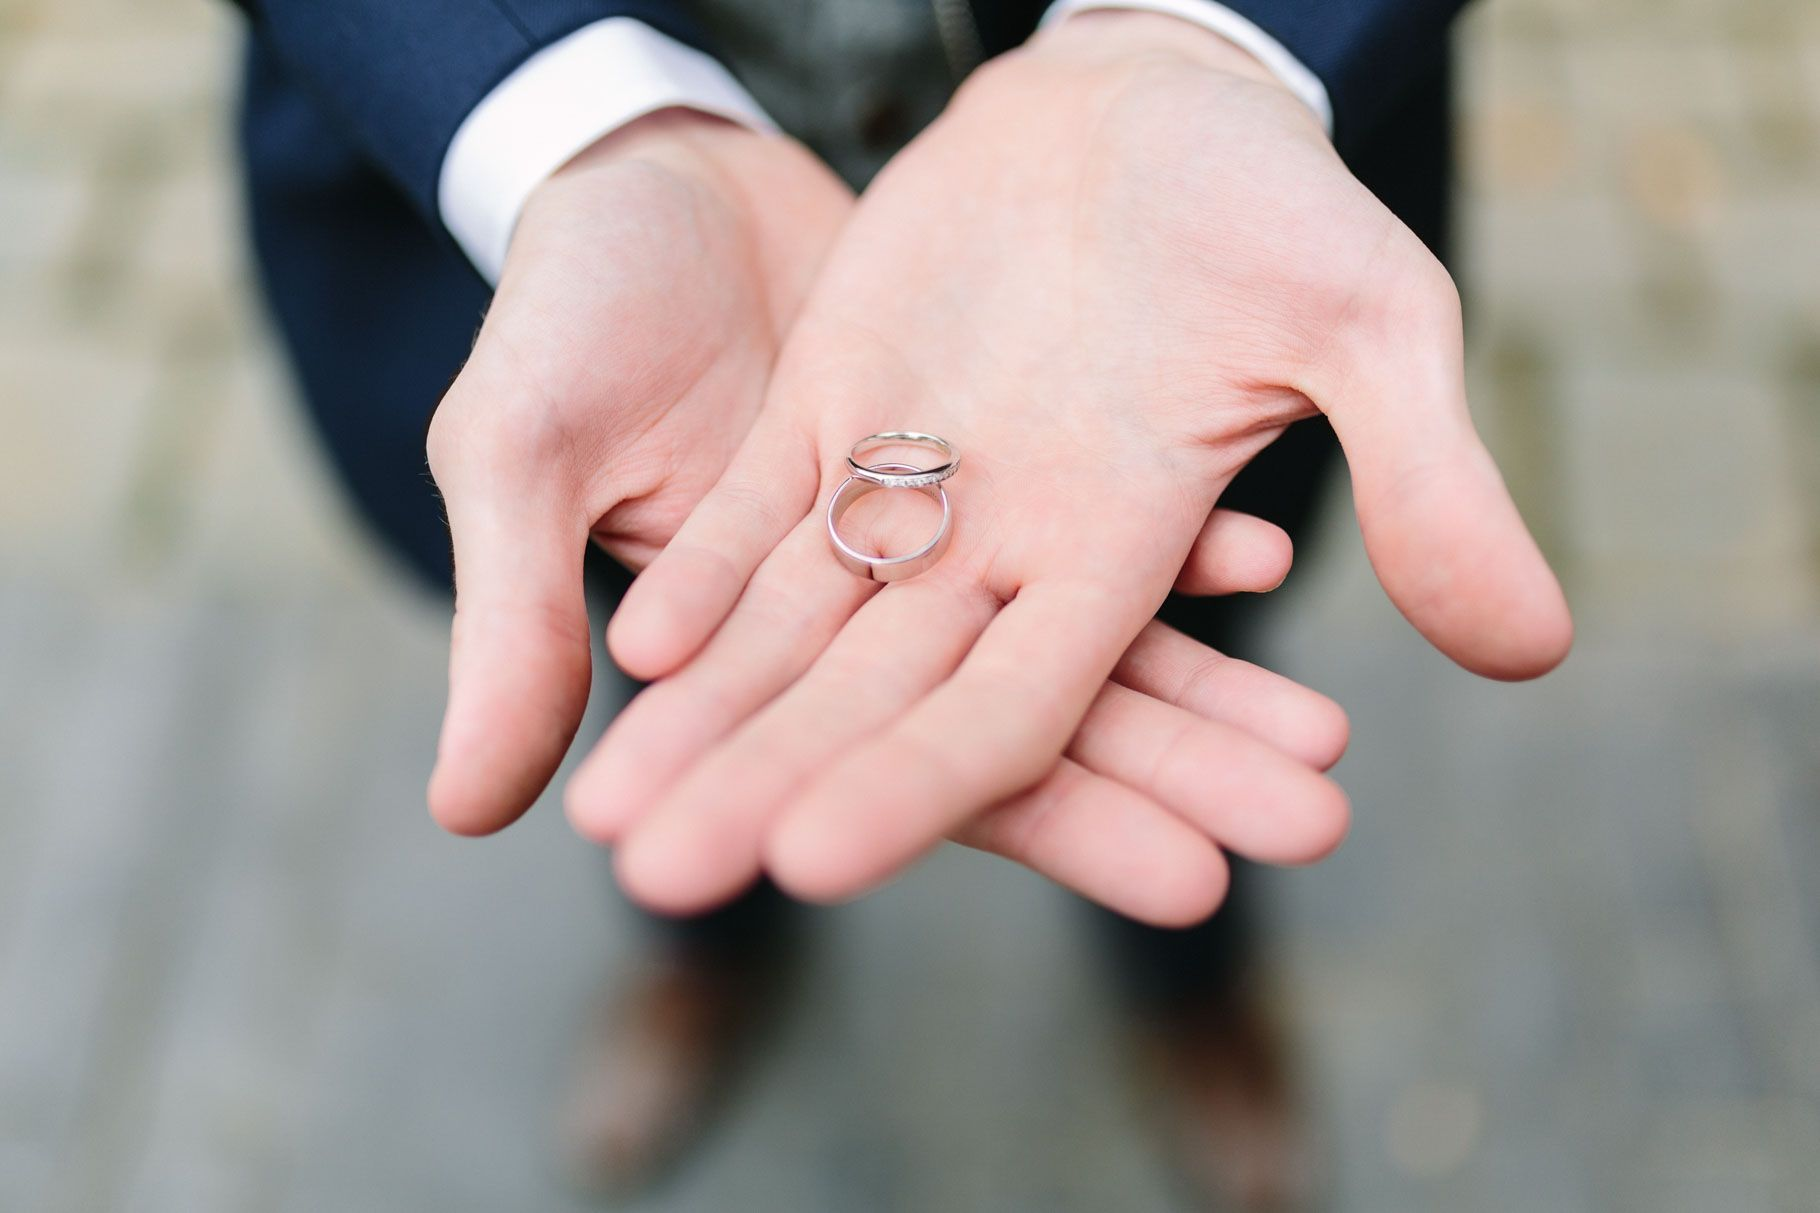 groom holding the wedding rings in his hands | Beauty Rings ...